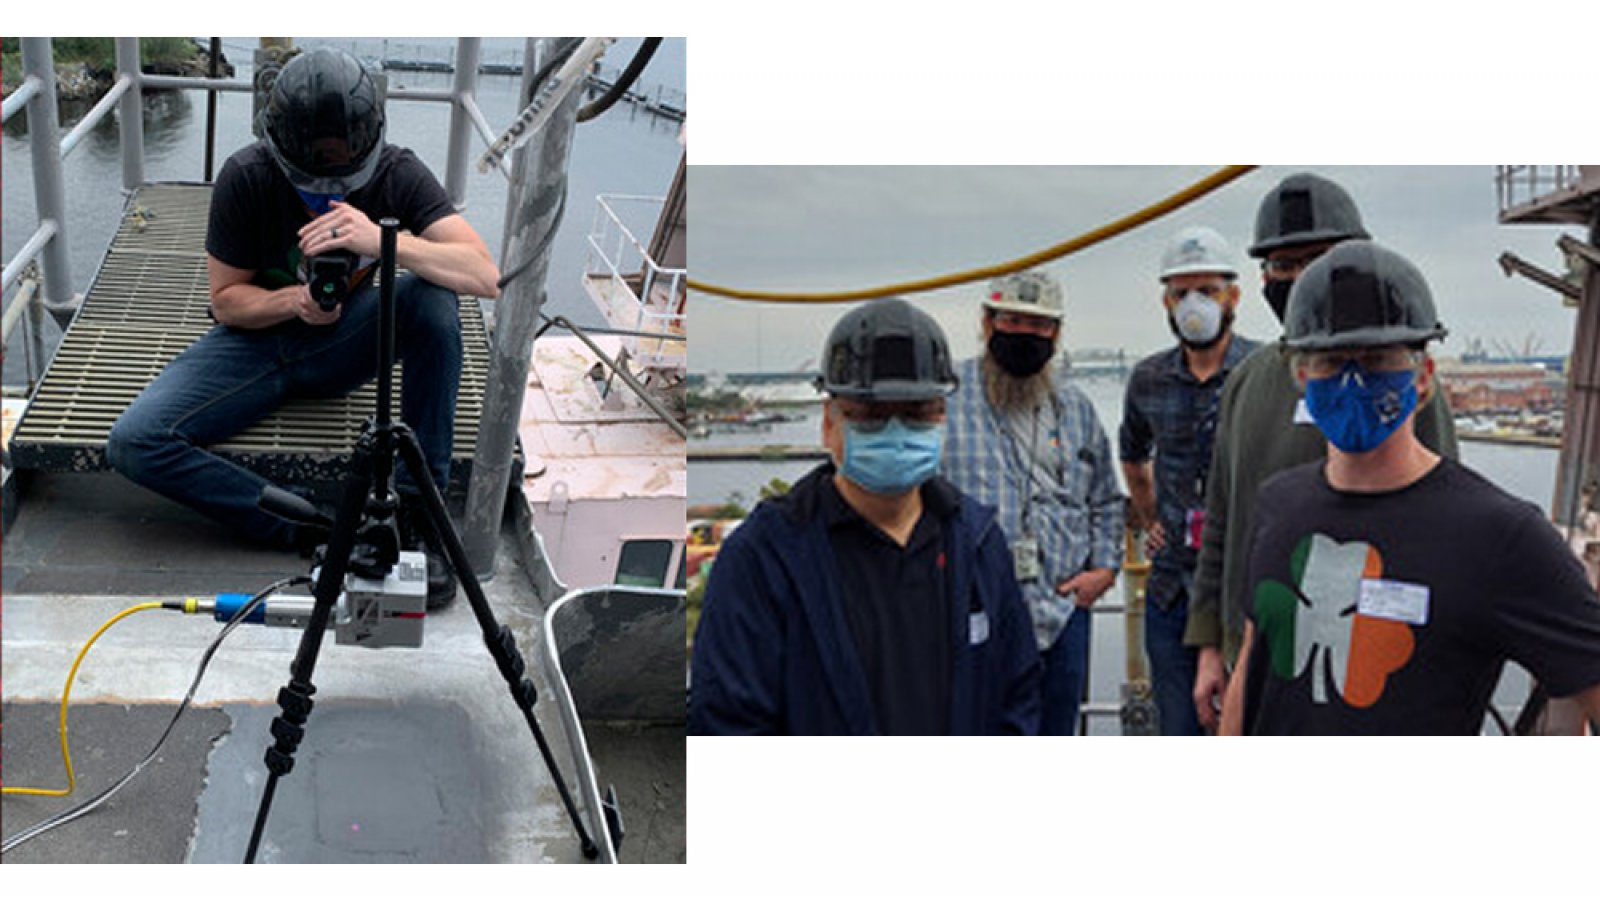 In Norfolk, Virginia, earlier this past fall, a Nebraska Engineering research team, including Tim Carlson (left photo) conducted a test of a laser-based system that prevents and repairs corrosion on aluminum-sided. The team (right photo) included Nebraska Engineering's Yongfeng Lu (left), Carlson (far right) and Nick Pease (obscured, second from right). Others pictured are (right of Lu) Richard Stark of NavSea and Donald Tubbs of Electrawatch.